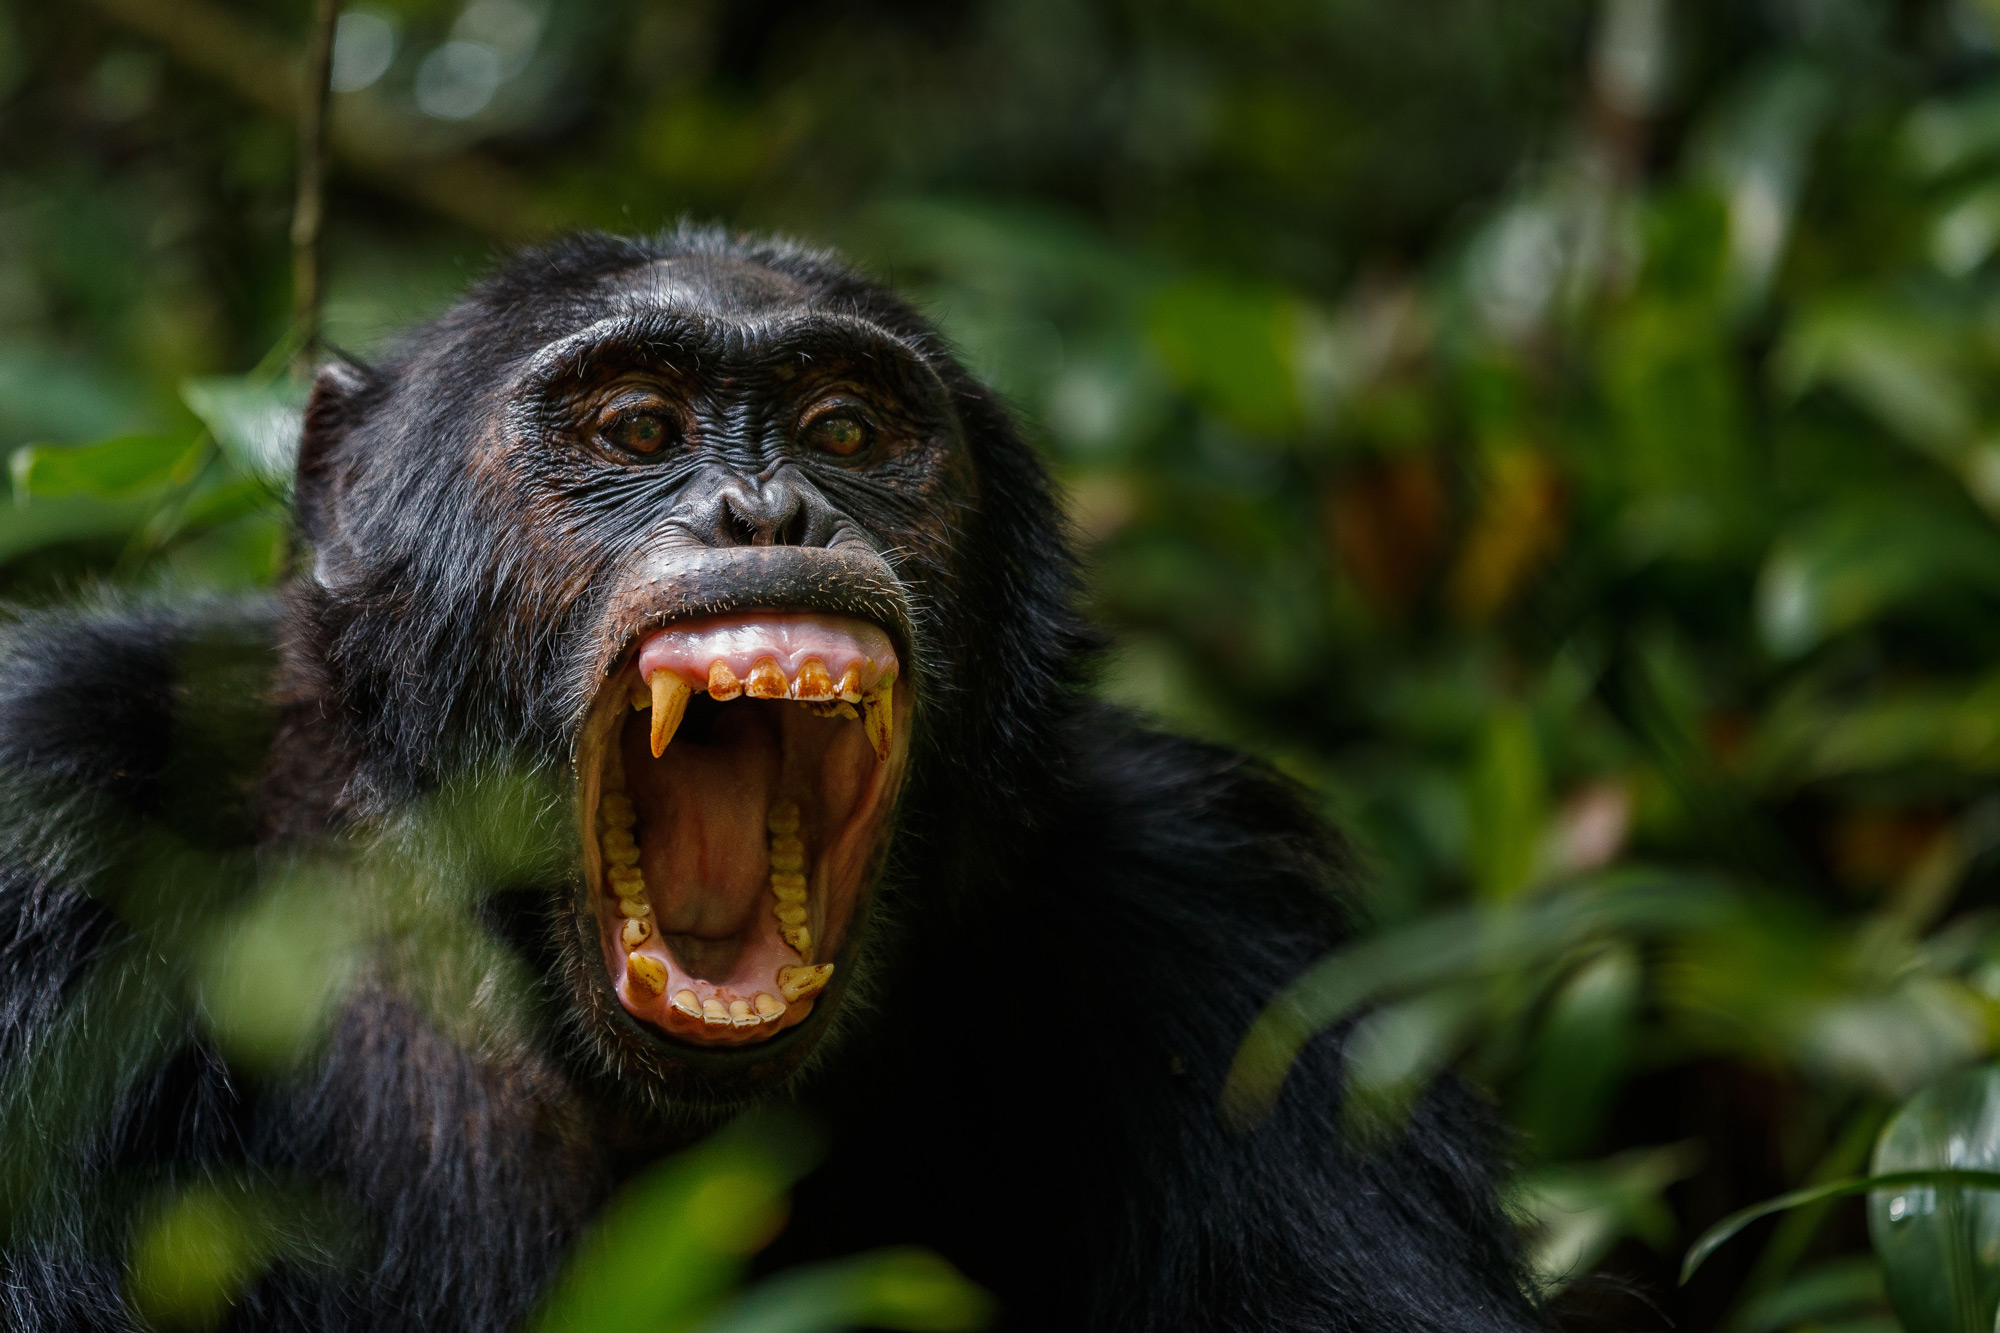 Threat display from a chimpanzee in Bwindi Impenetrable National Park, Uganda © Thorsten Hanewald